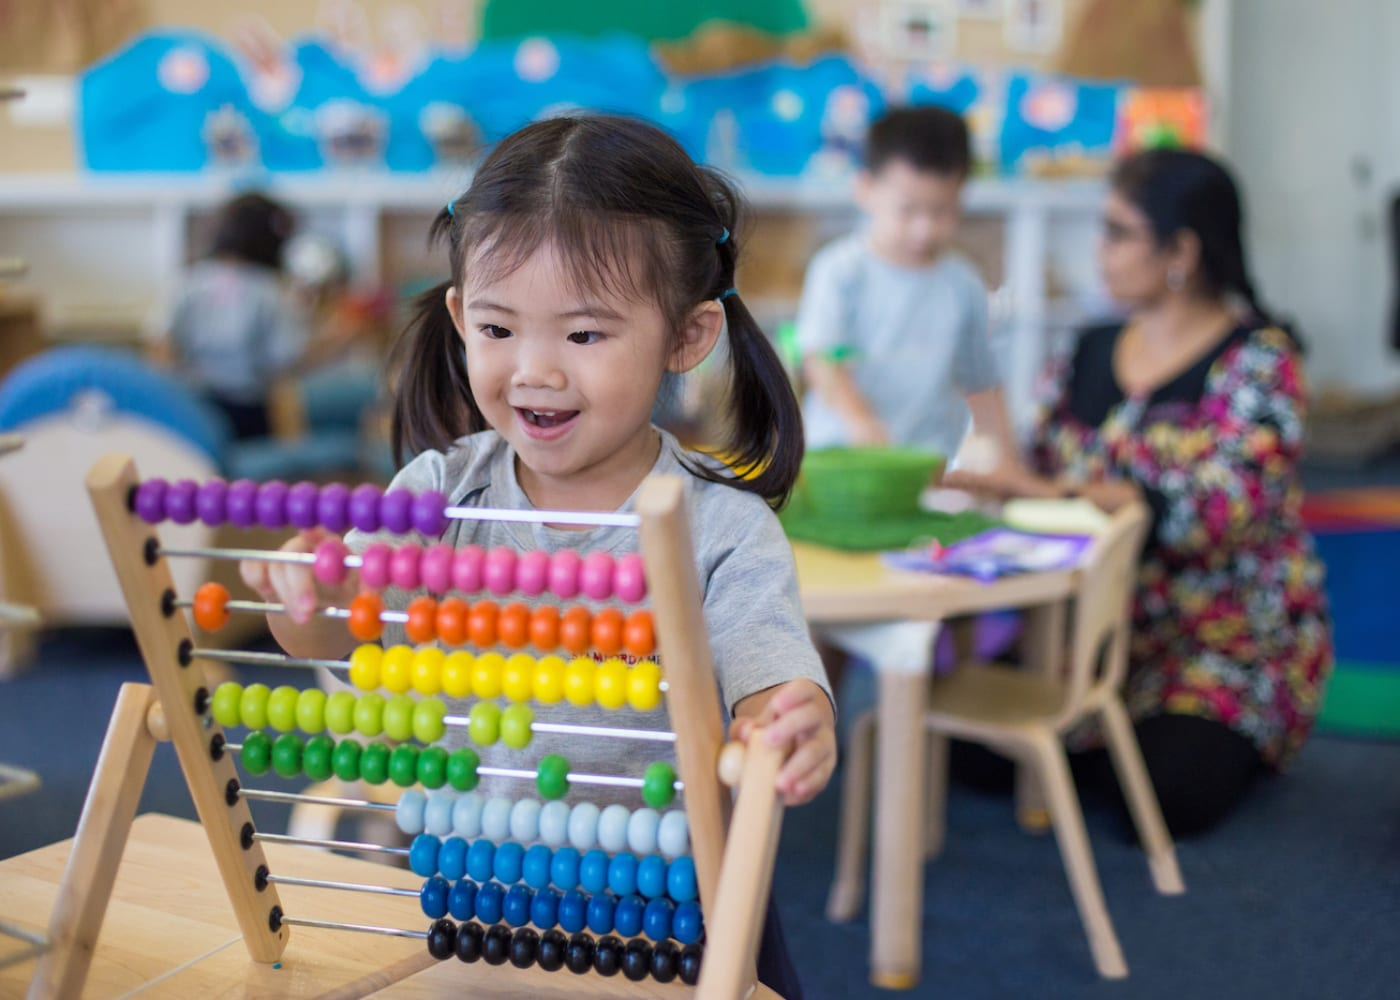 How SAIS helps set our kids up for success, thanks to its Early Learning Village and tailored approach